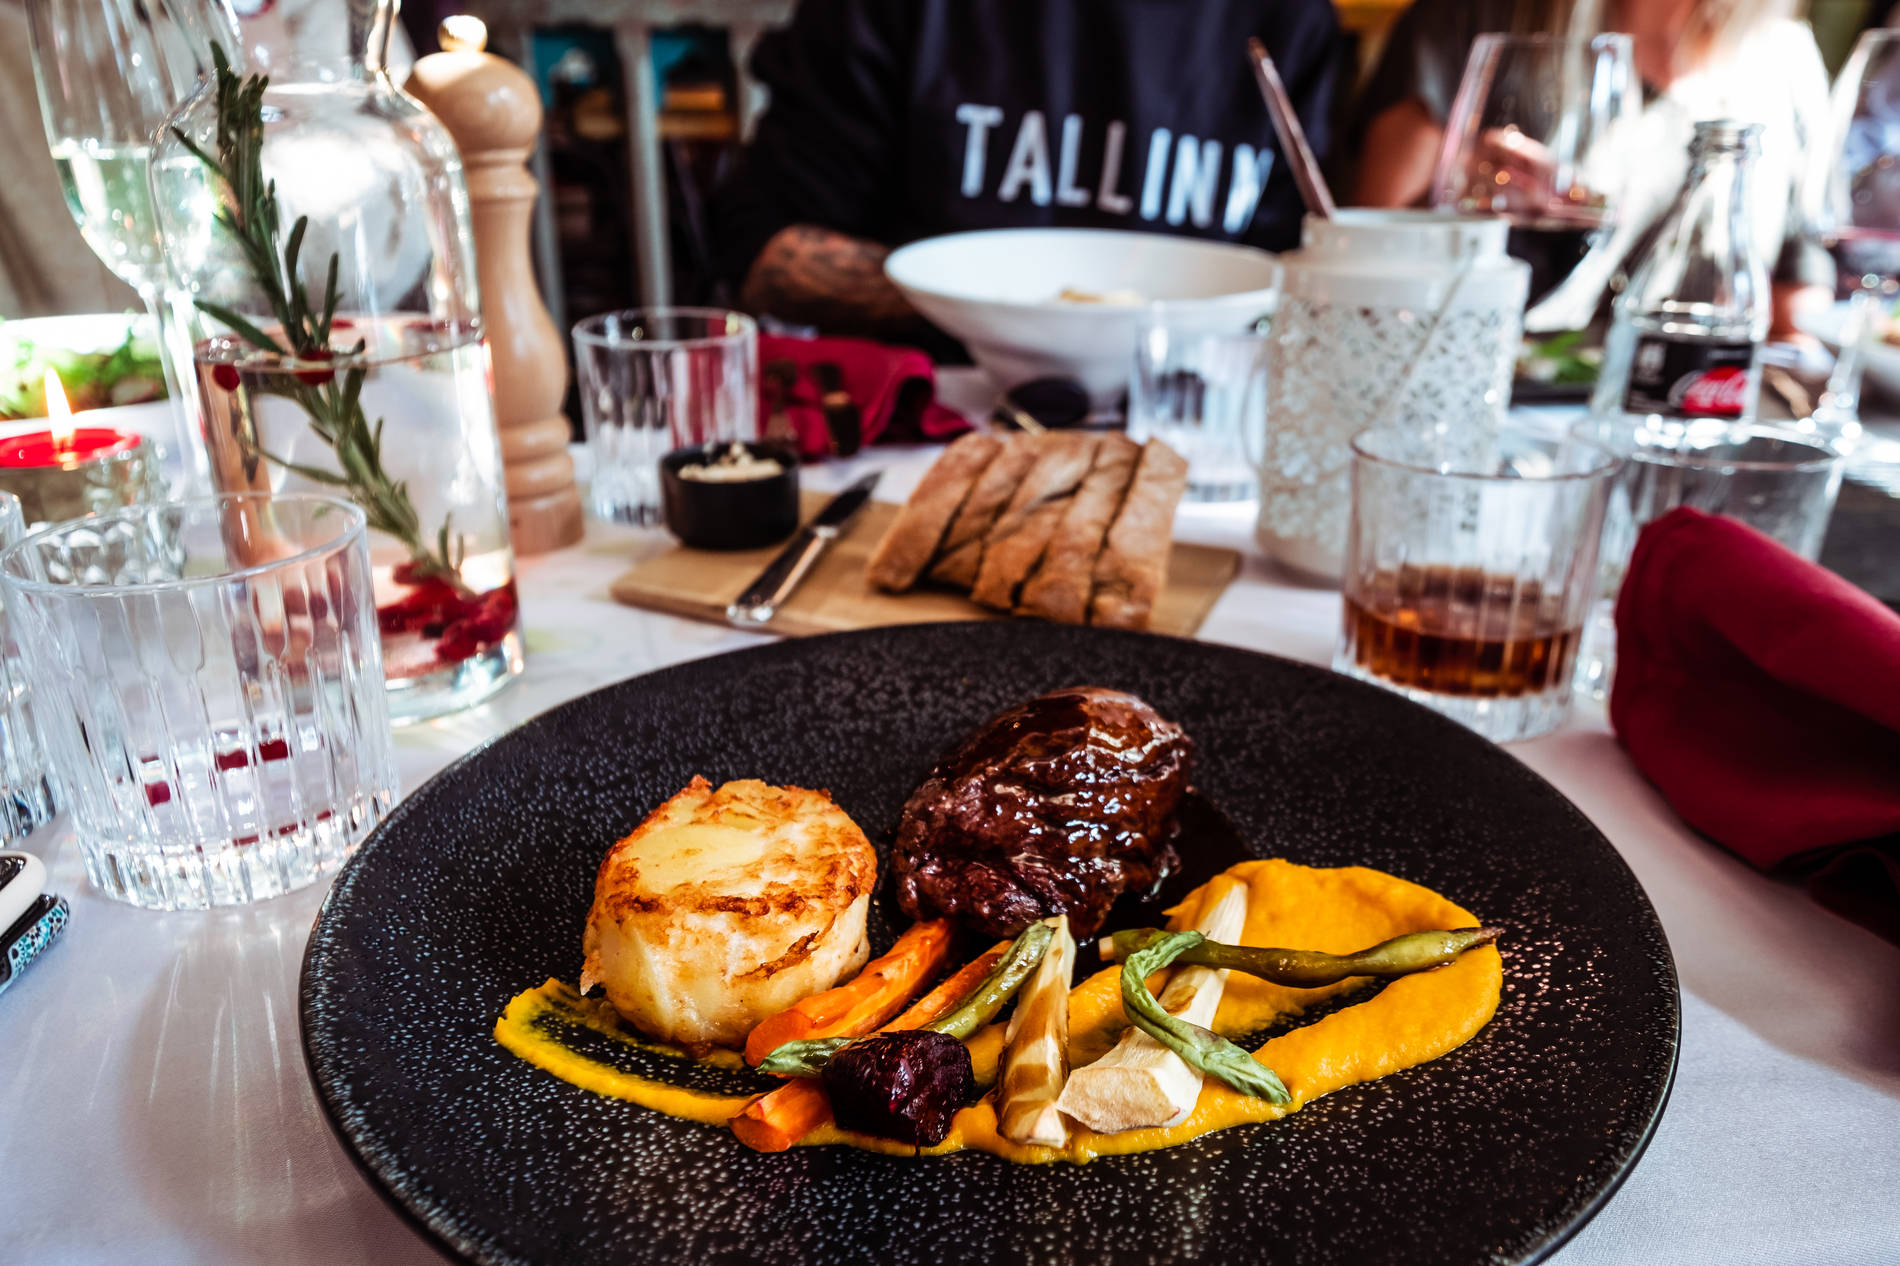 A plate of food in Tallinn, Estonia